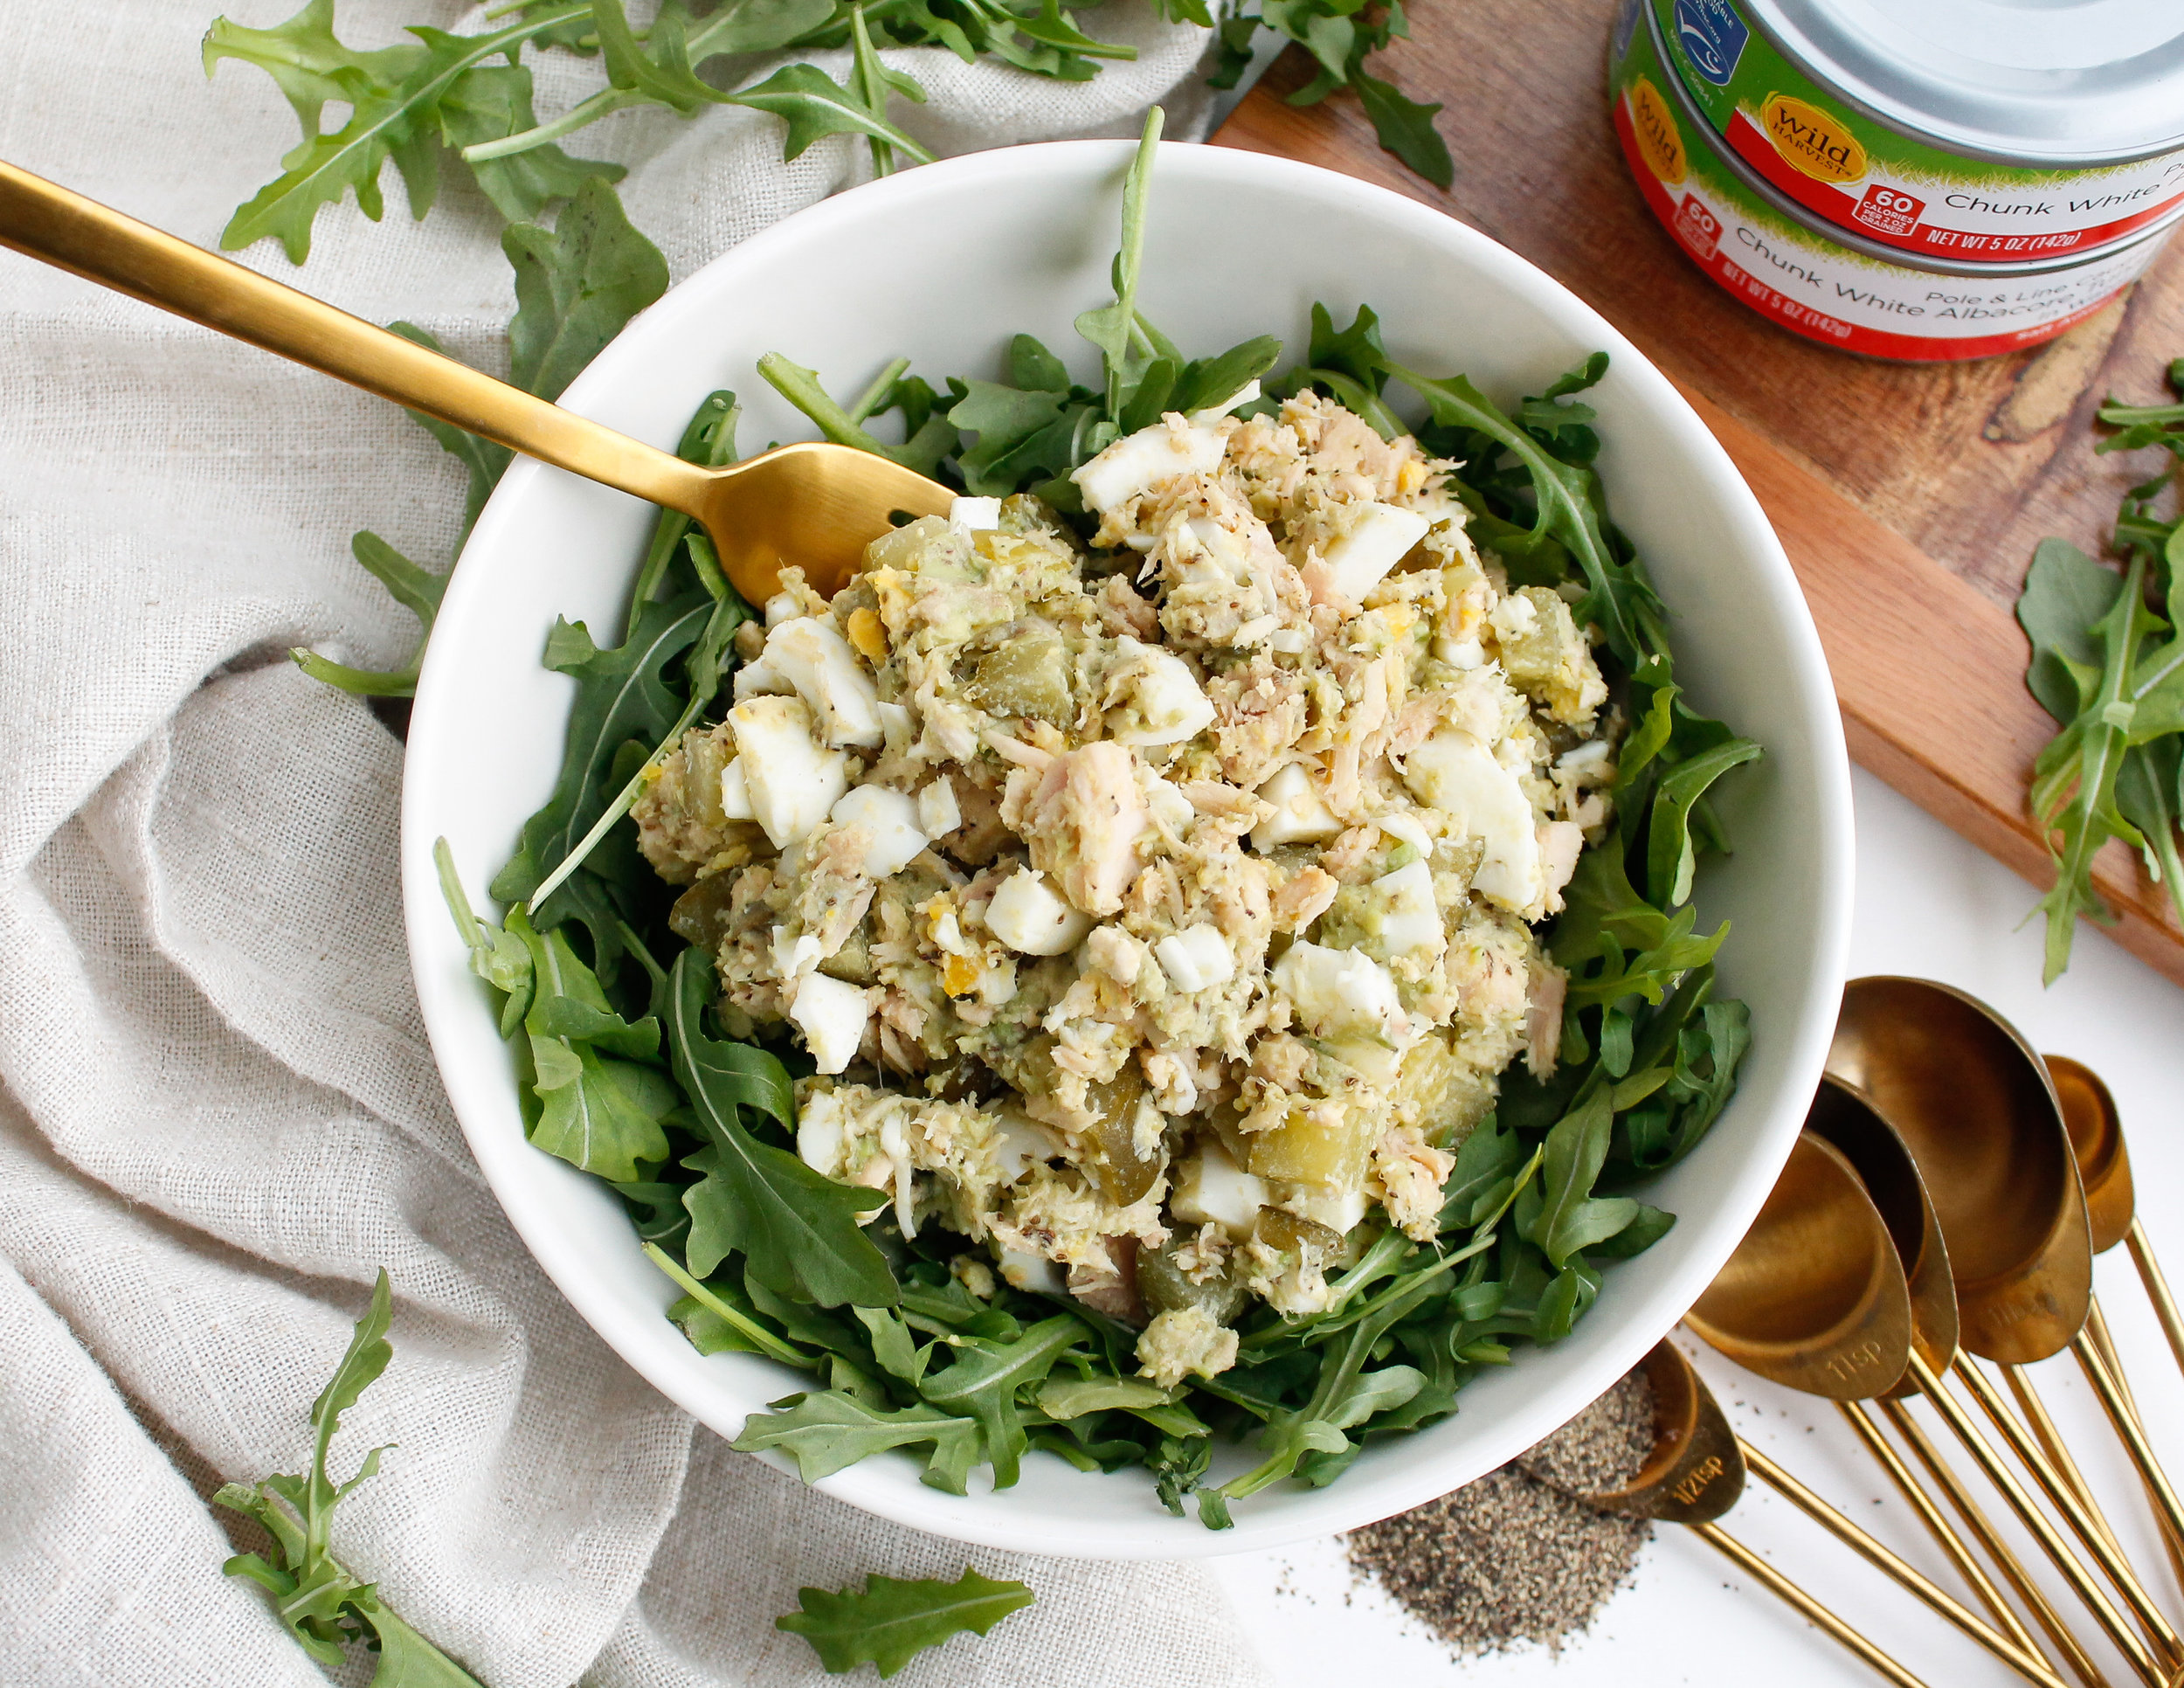 This quick and easy, budget-friendly tuna egg salad is perfect for busy days when you still want something healthy on hand! It's paleo, gluten free, dairy free and Specific Carbohydrate Diet Friendly and is made with Wild Harvest canned tuna. #sponsored Wild Harvest makes a huge variety of products that make eating healthy easier on your wallet. Their products are also free from over 140 undesirable additives in many products today! Click through to see the full recipe! #freefrombad